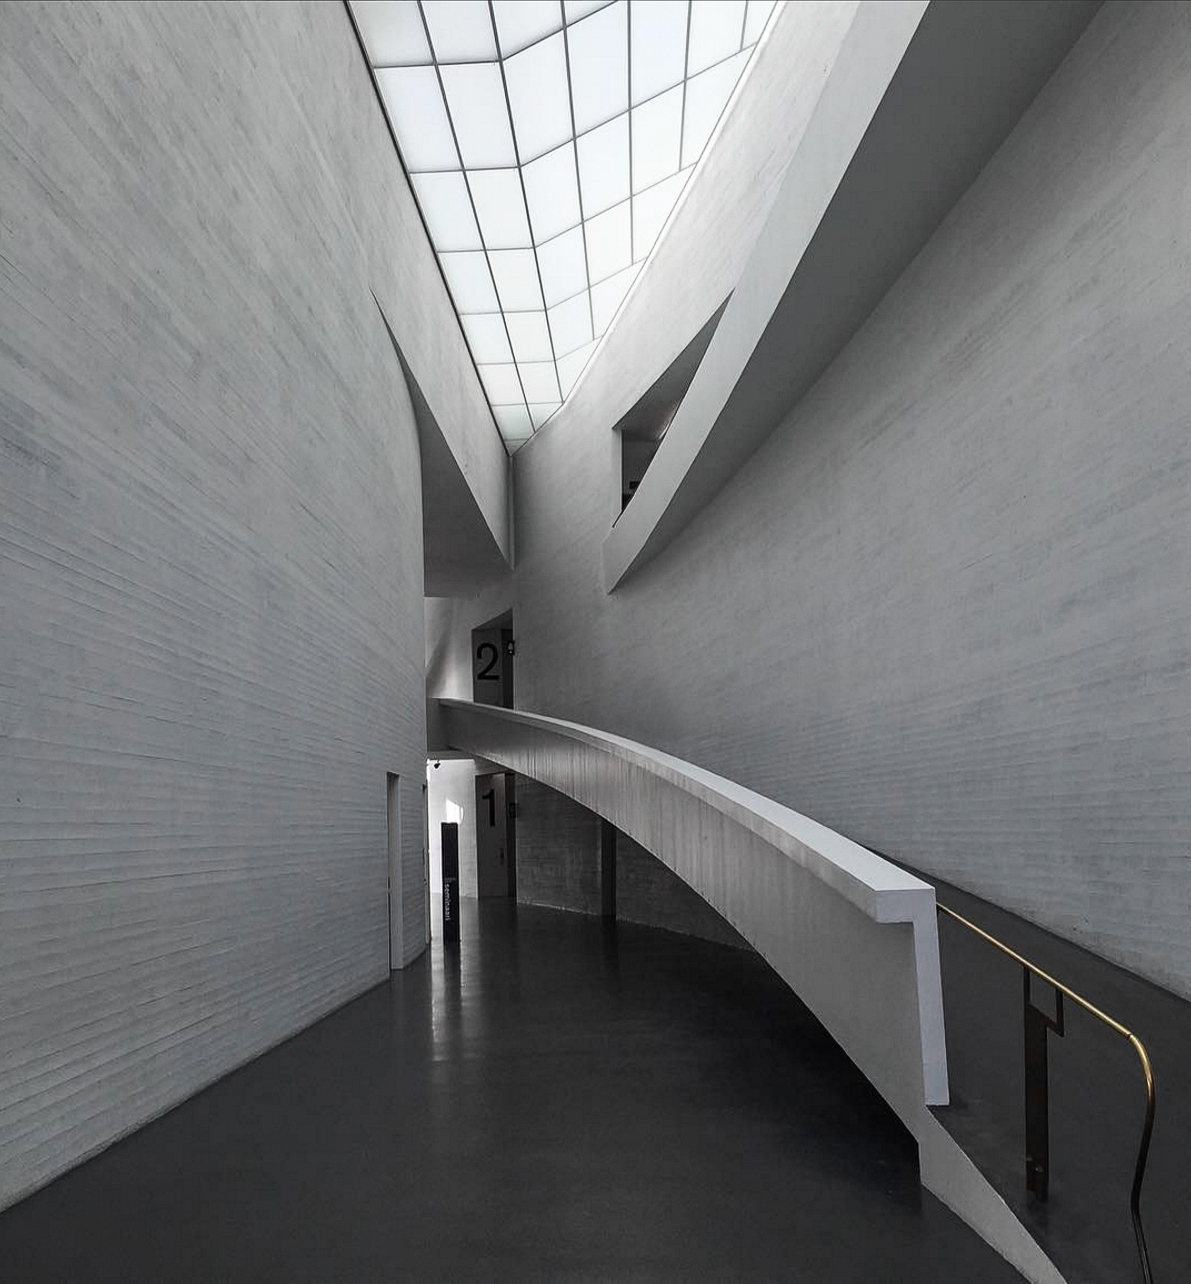 Steven Holl,  Kiasma  (Contemporary Art Museum of the Finnish National Gallery) Helsinki, Finland 1993-1998. Entrance Hall View.